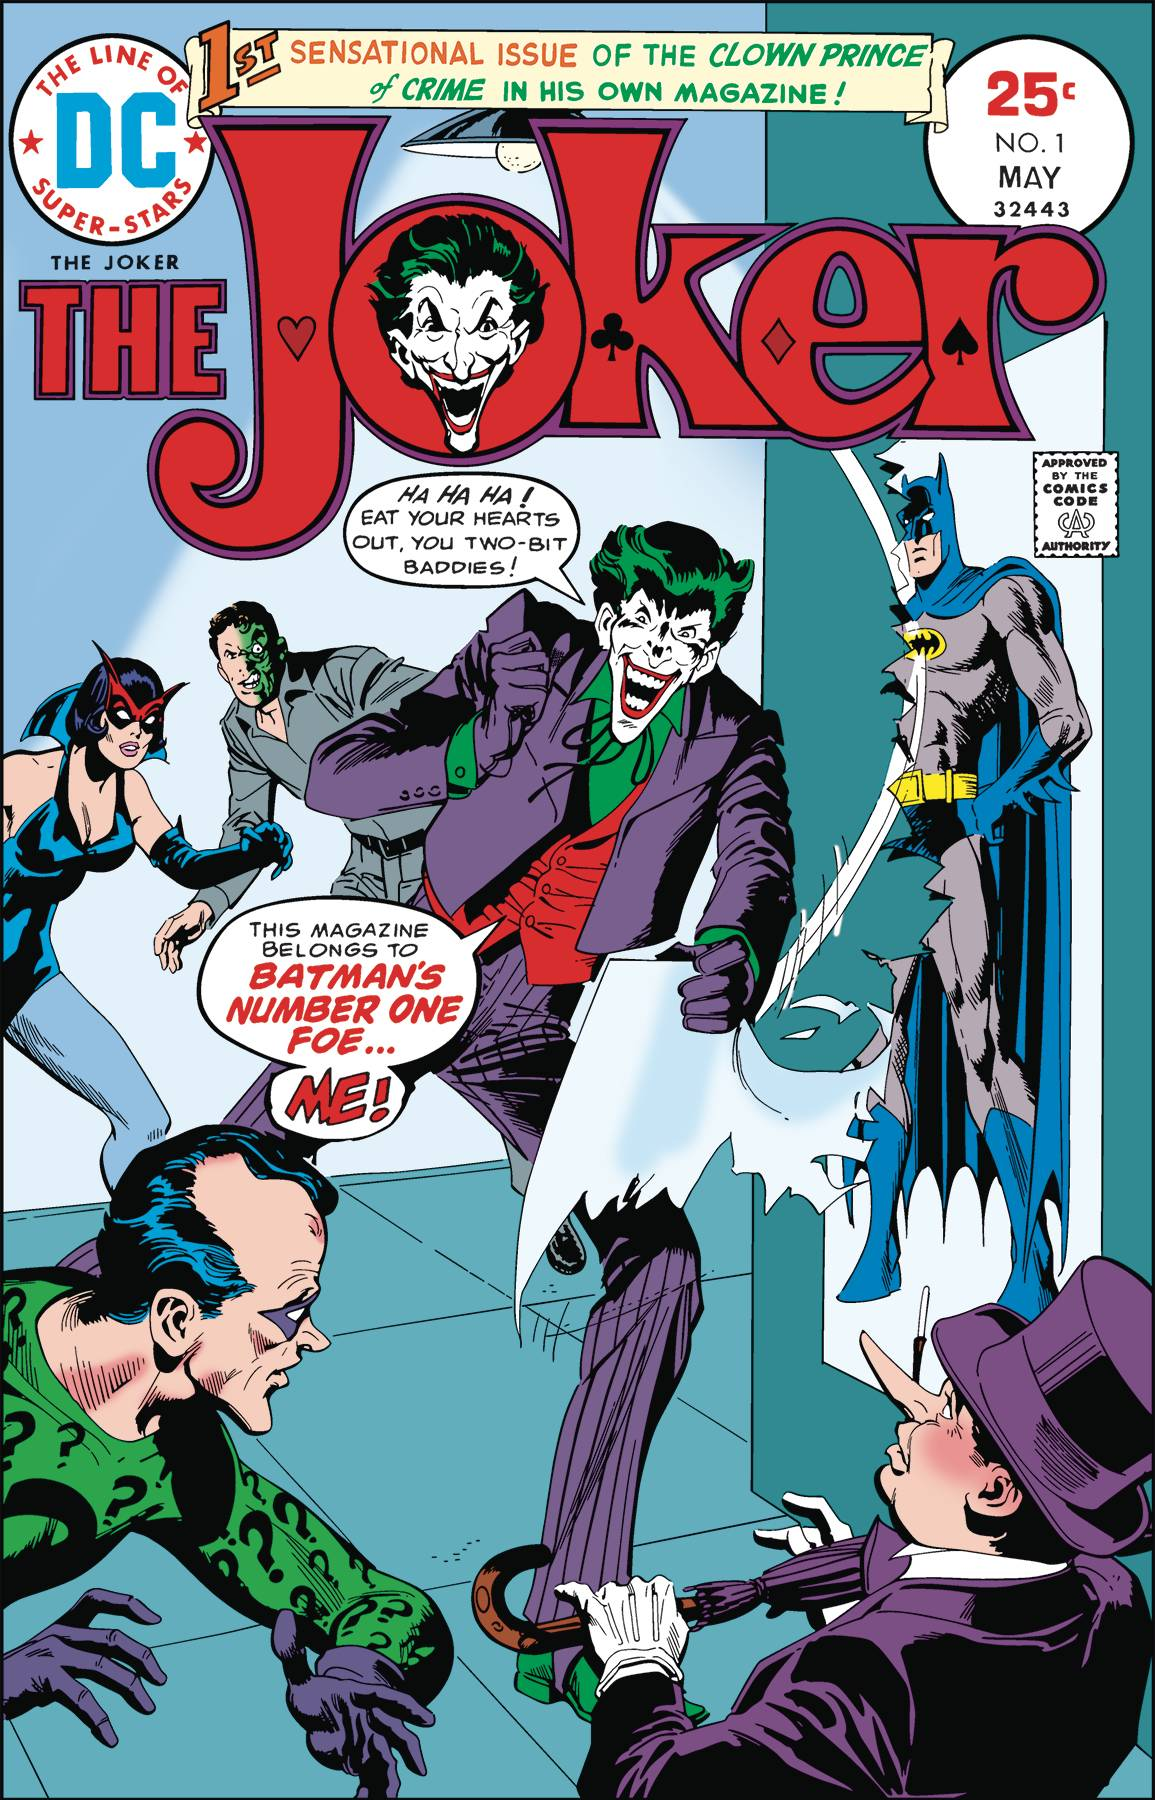 DOLLAR COMICS JOKER 1.jpg